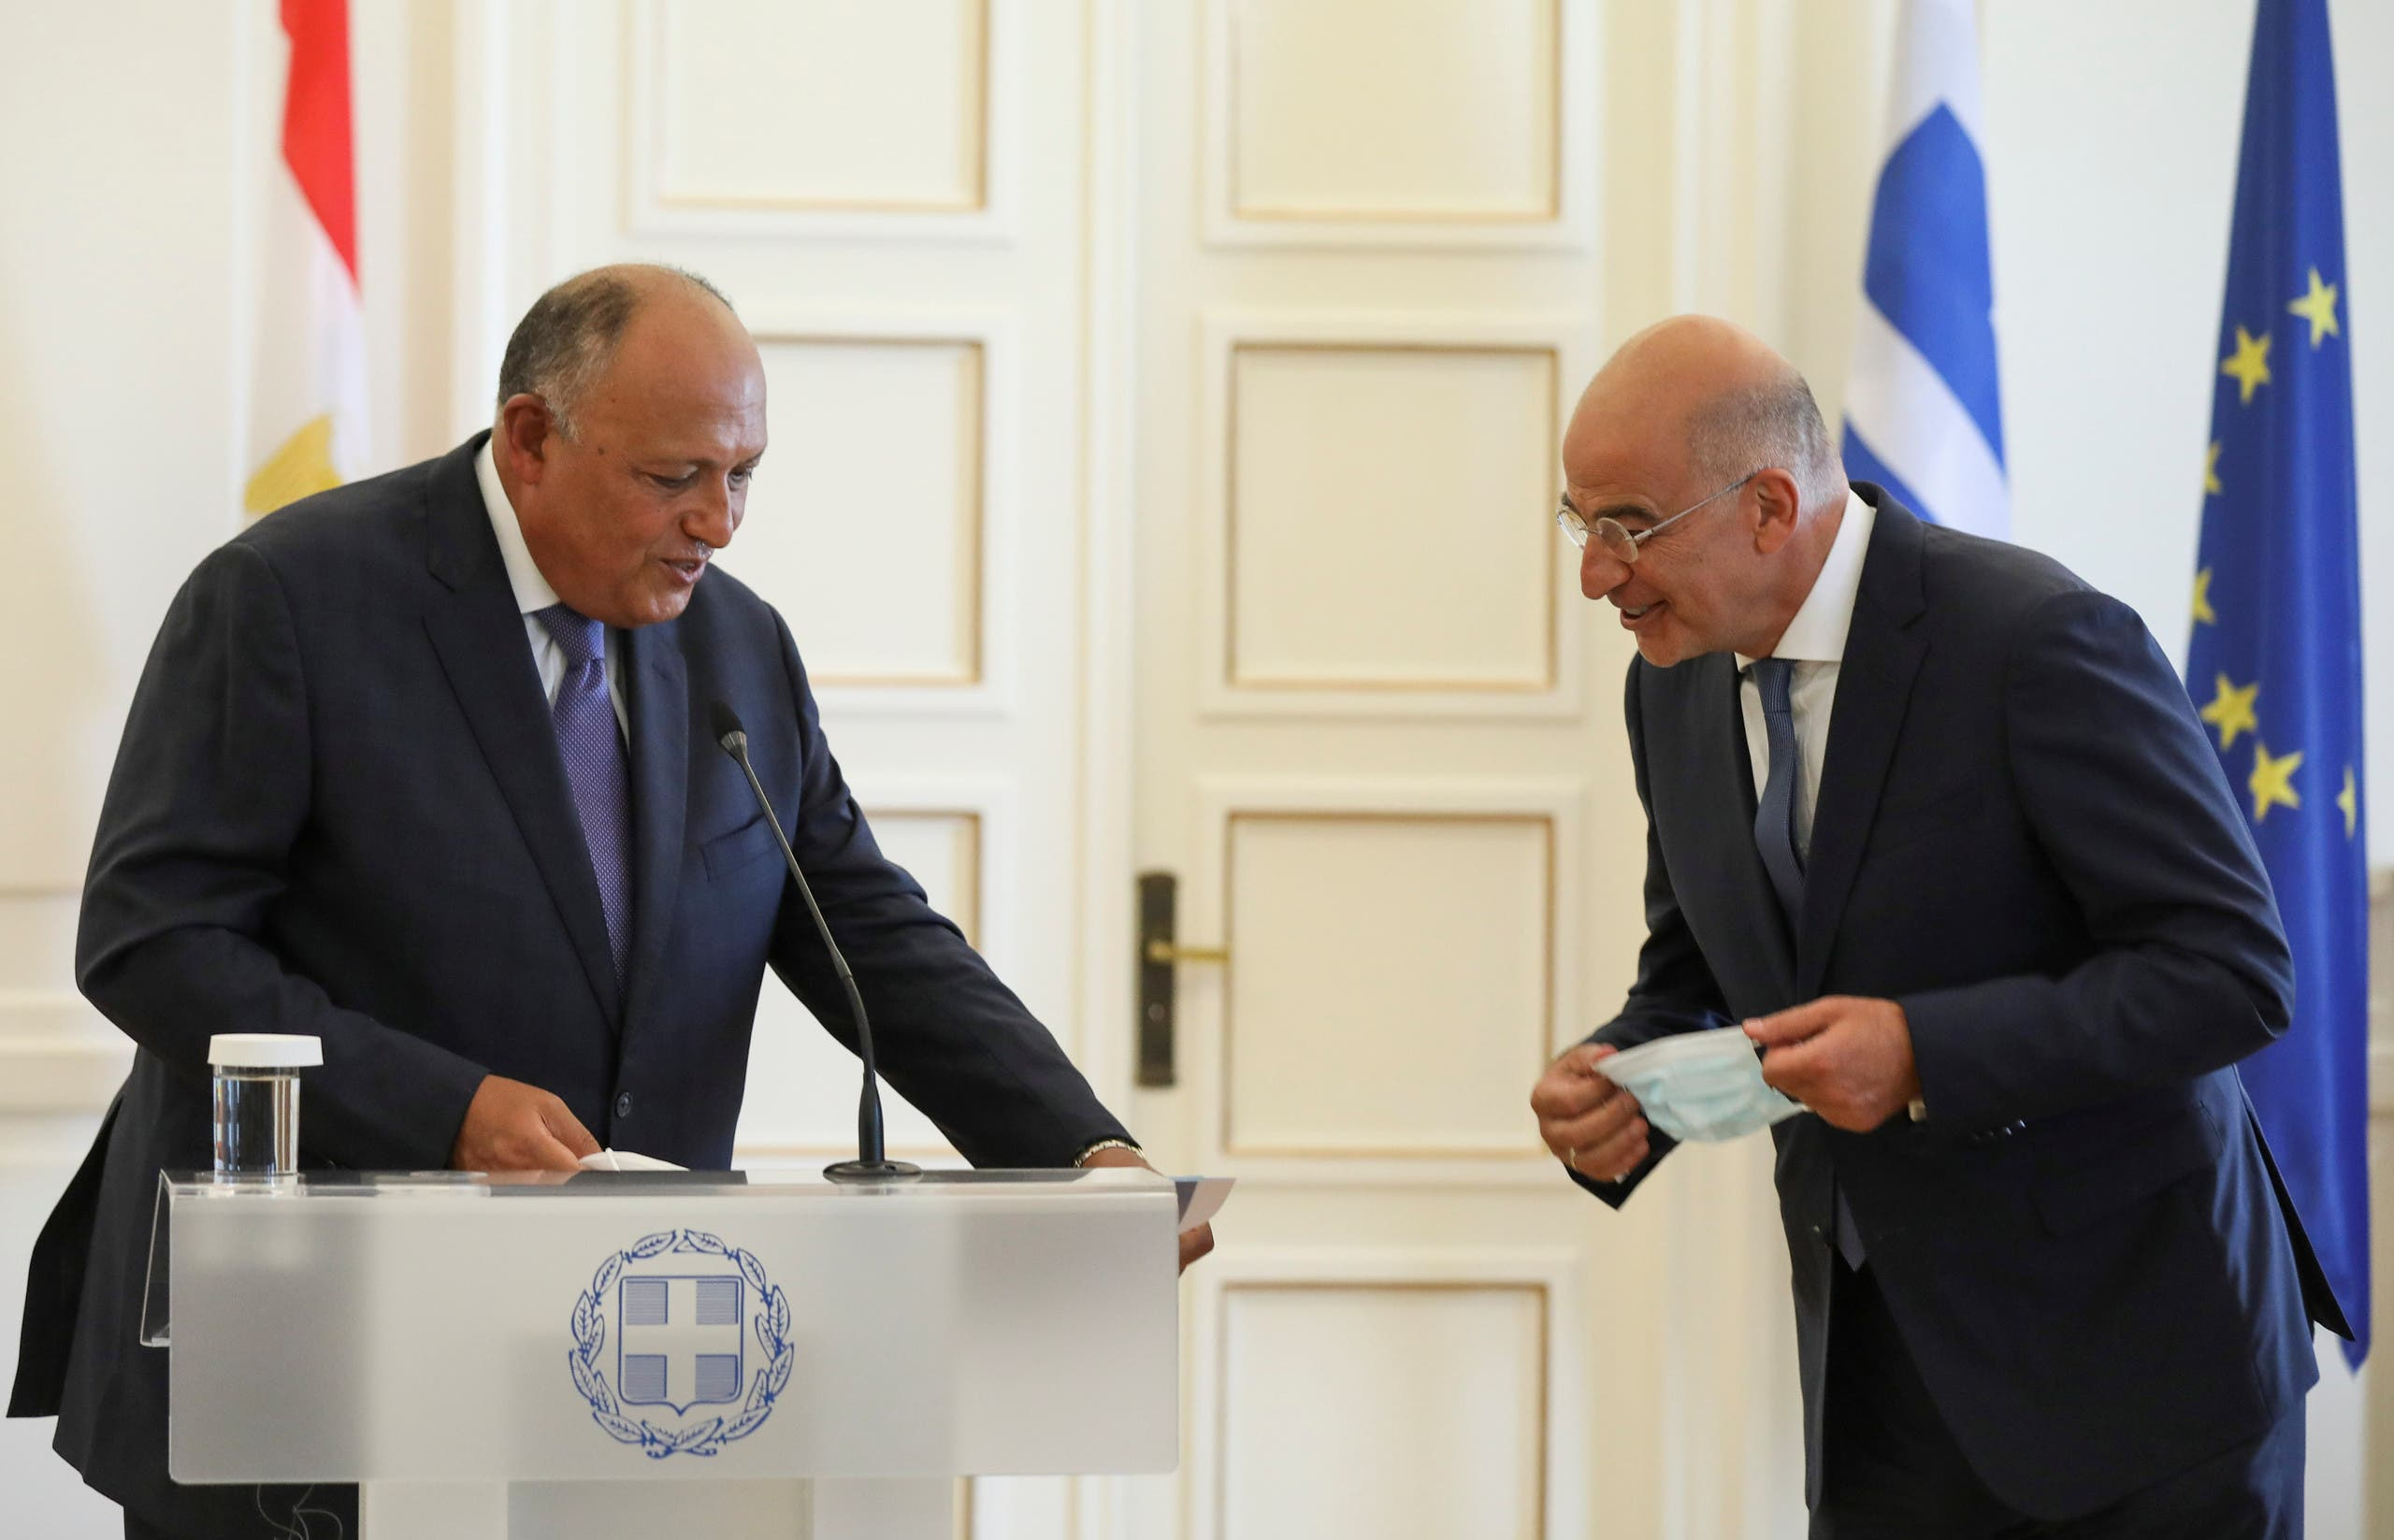 Greek Foreign Minister Nikos Dendias and his Egyptian counterpart Sameh Shoukry arrive to make a joint statement at the Foreign Ministry, in Athens, Greece September 15, 2020. (Reuters)